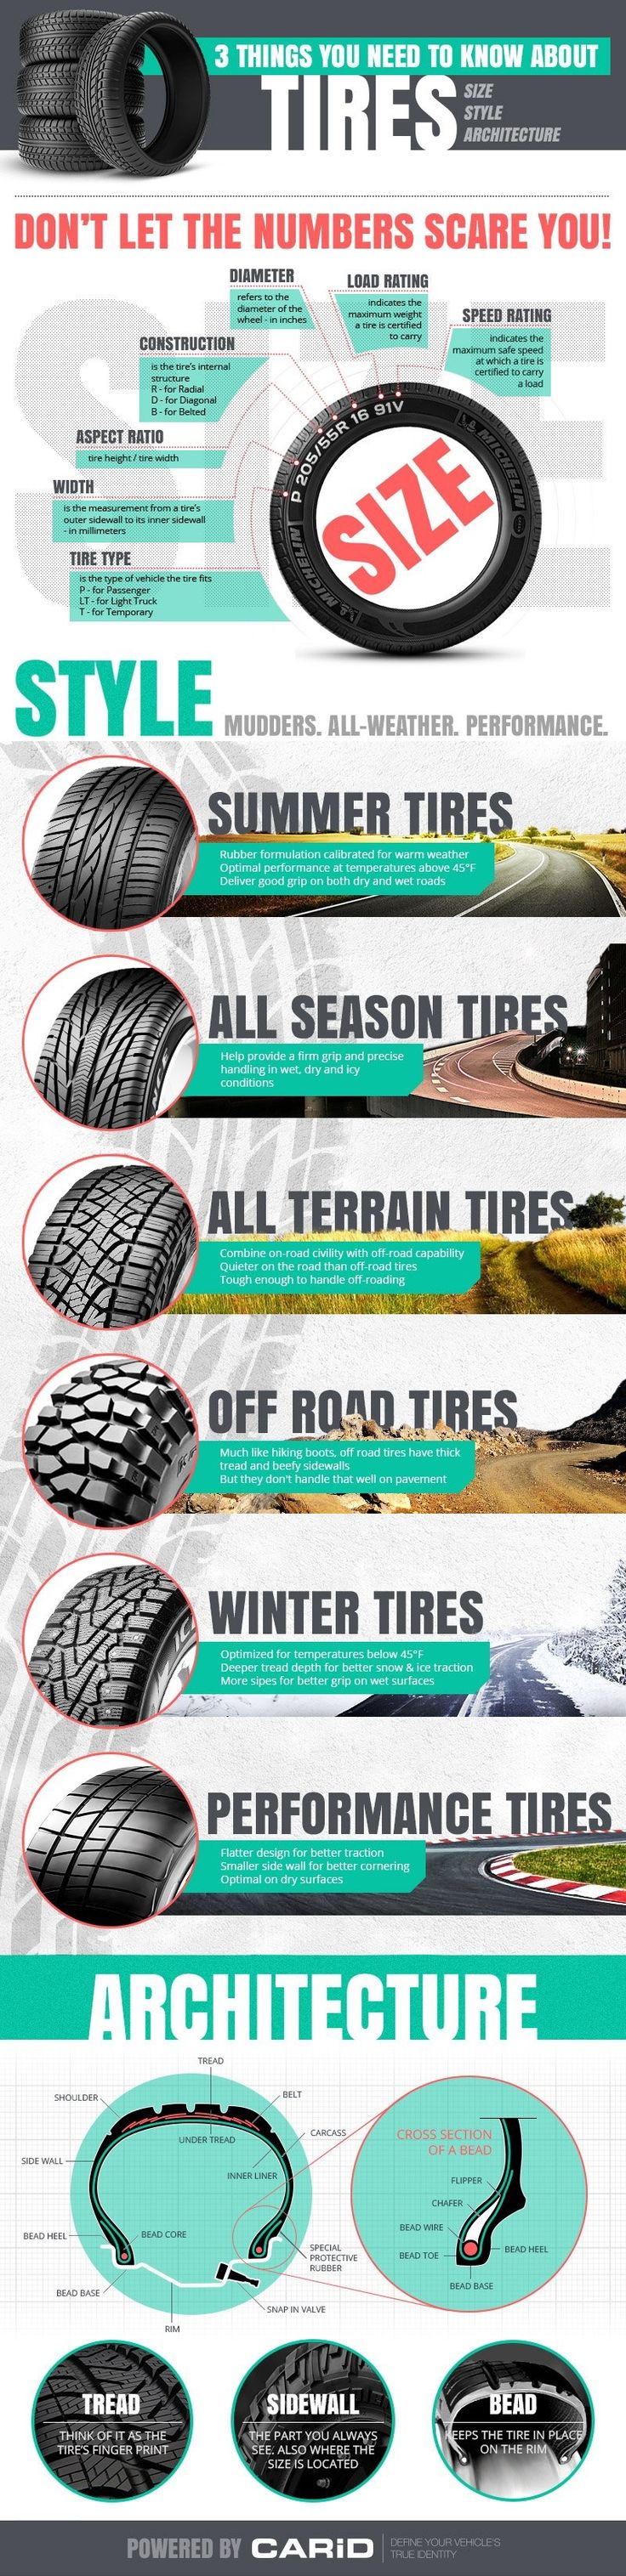 Tires, yo. - US Trailer would love to lease used trailers in any condition to or from you. Contact USTrailer and let us buy your trailer. Click to http://USTrailer.com or Call 816-795-8484